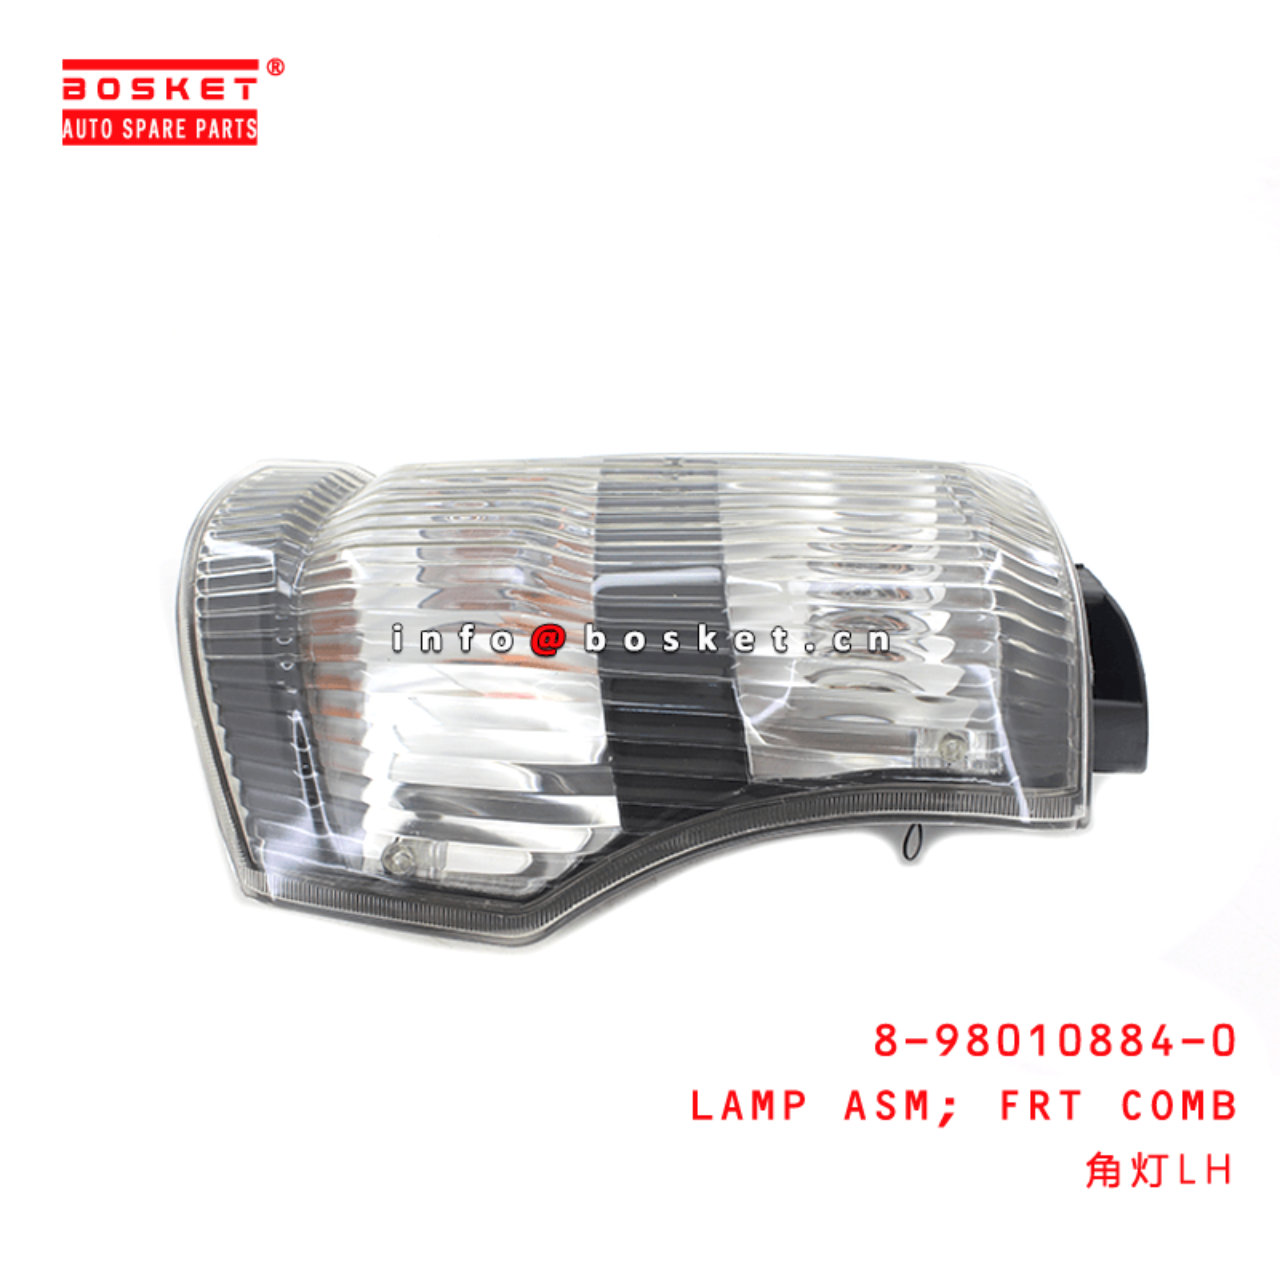 8-98010884-0 Front Combination Lamp Assembly LH 8980108840 Suitable for ISUZU NKR NPR